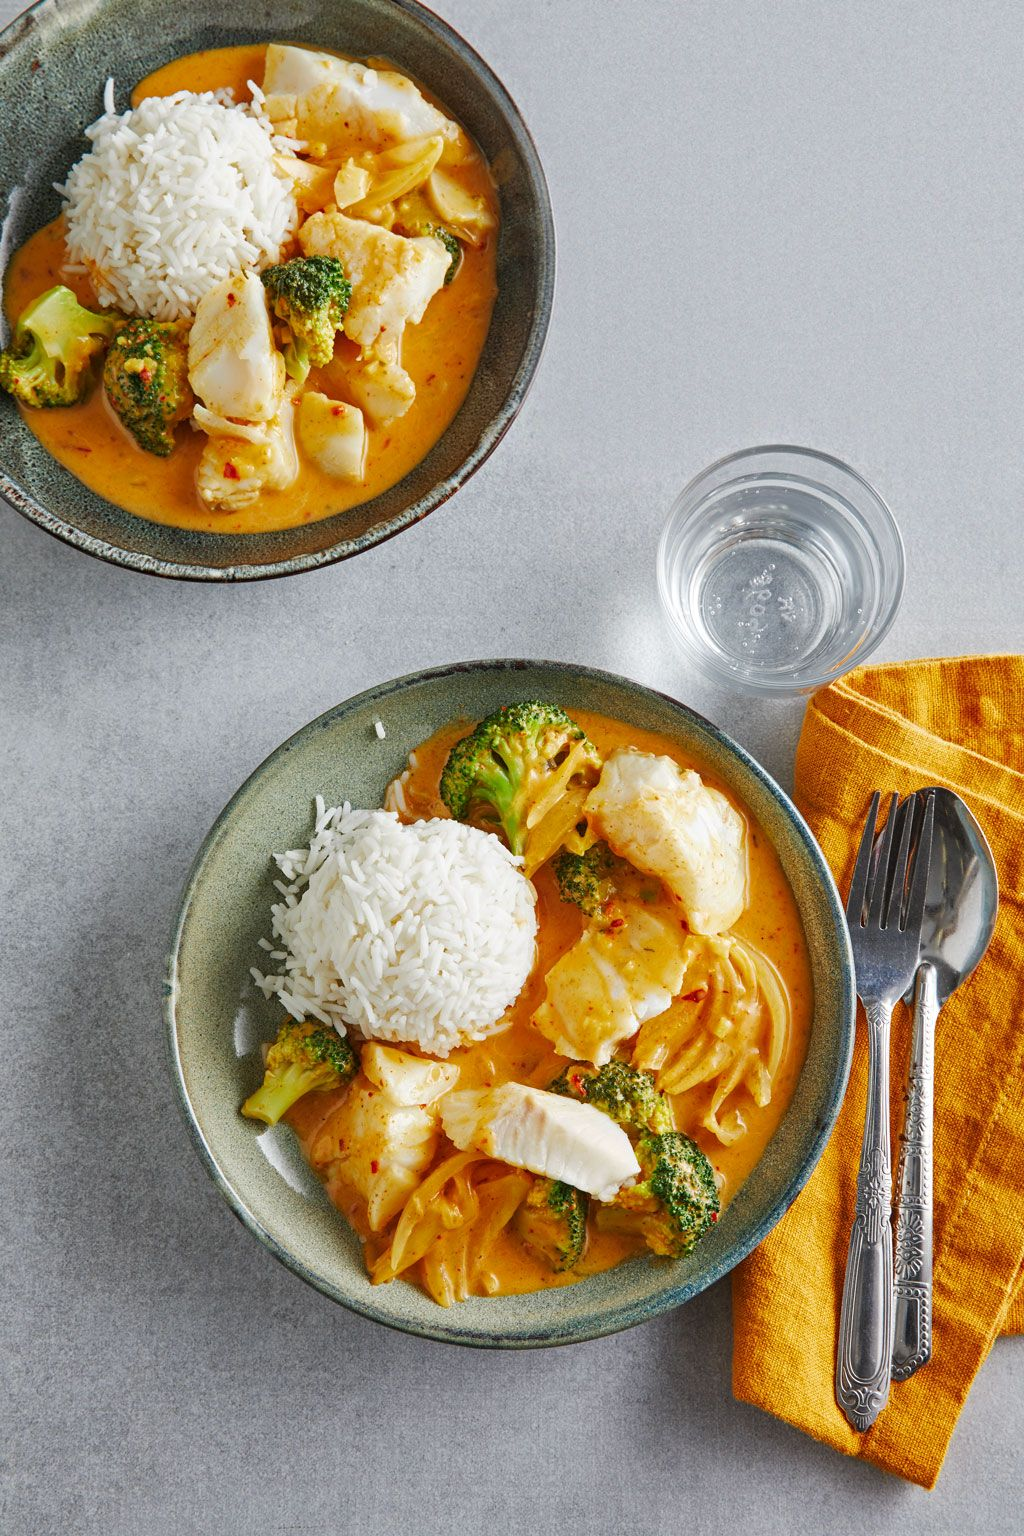 Photo of Fish curry with broccoli by Pyrrhocorax | chef